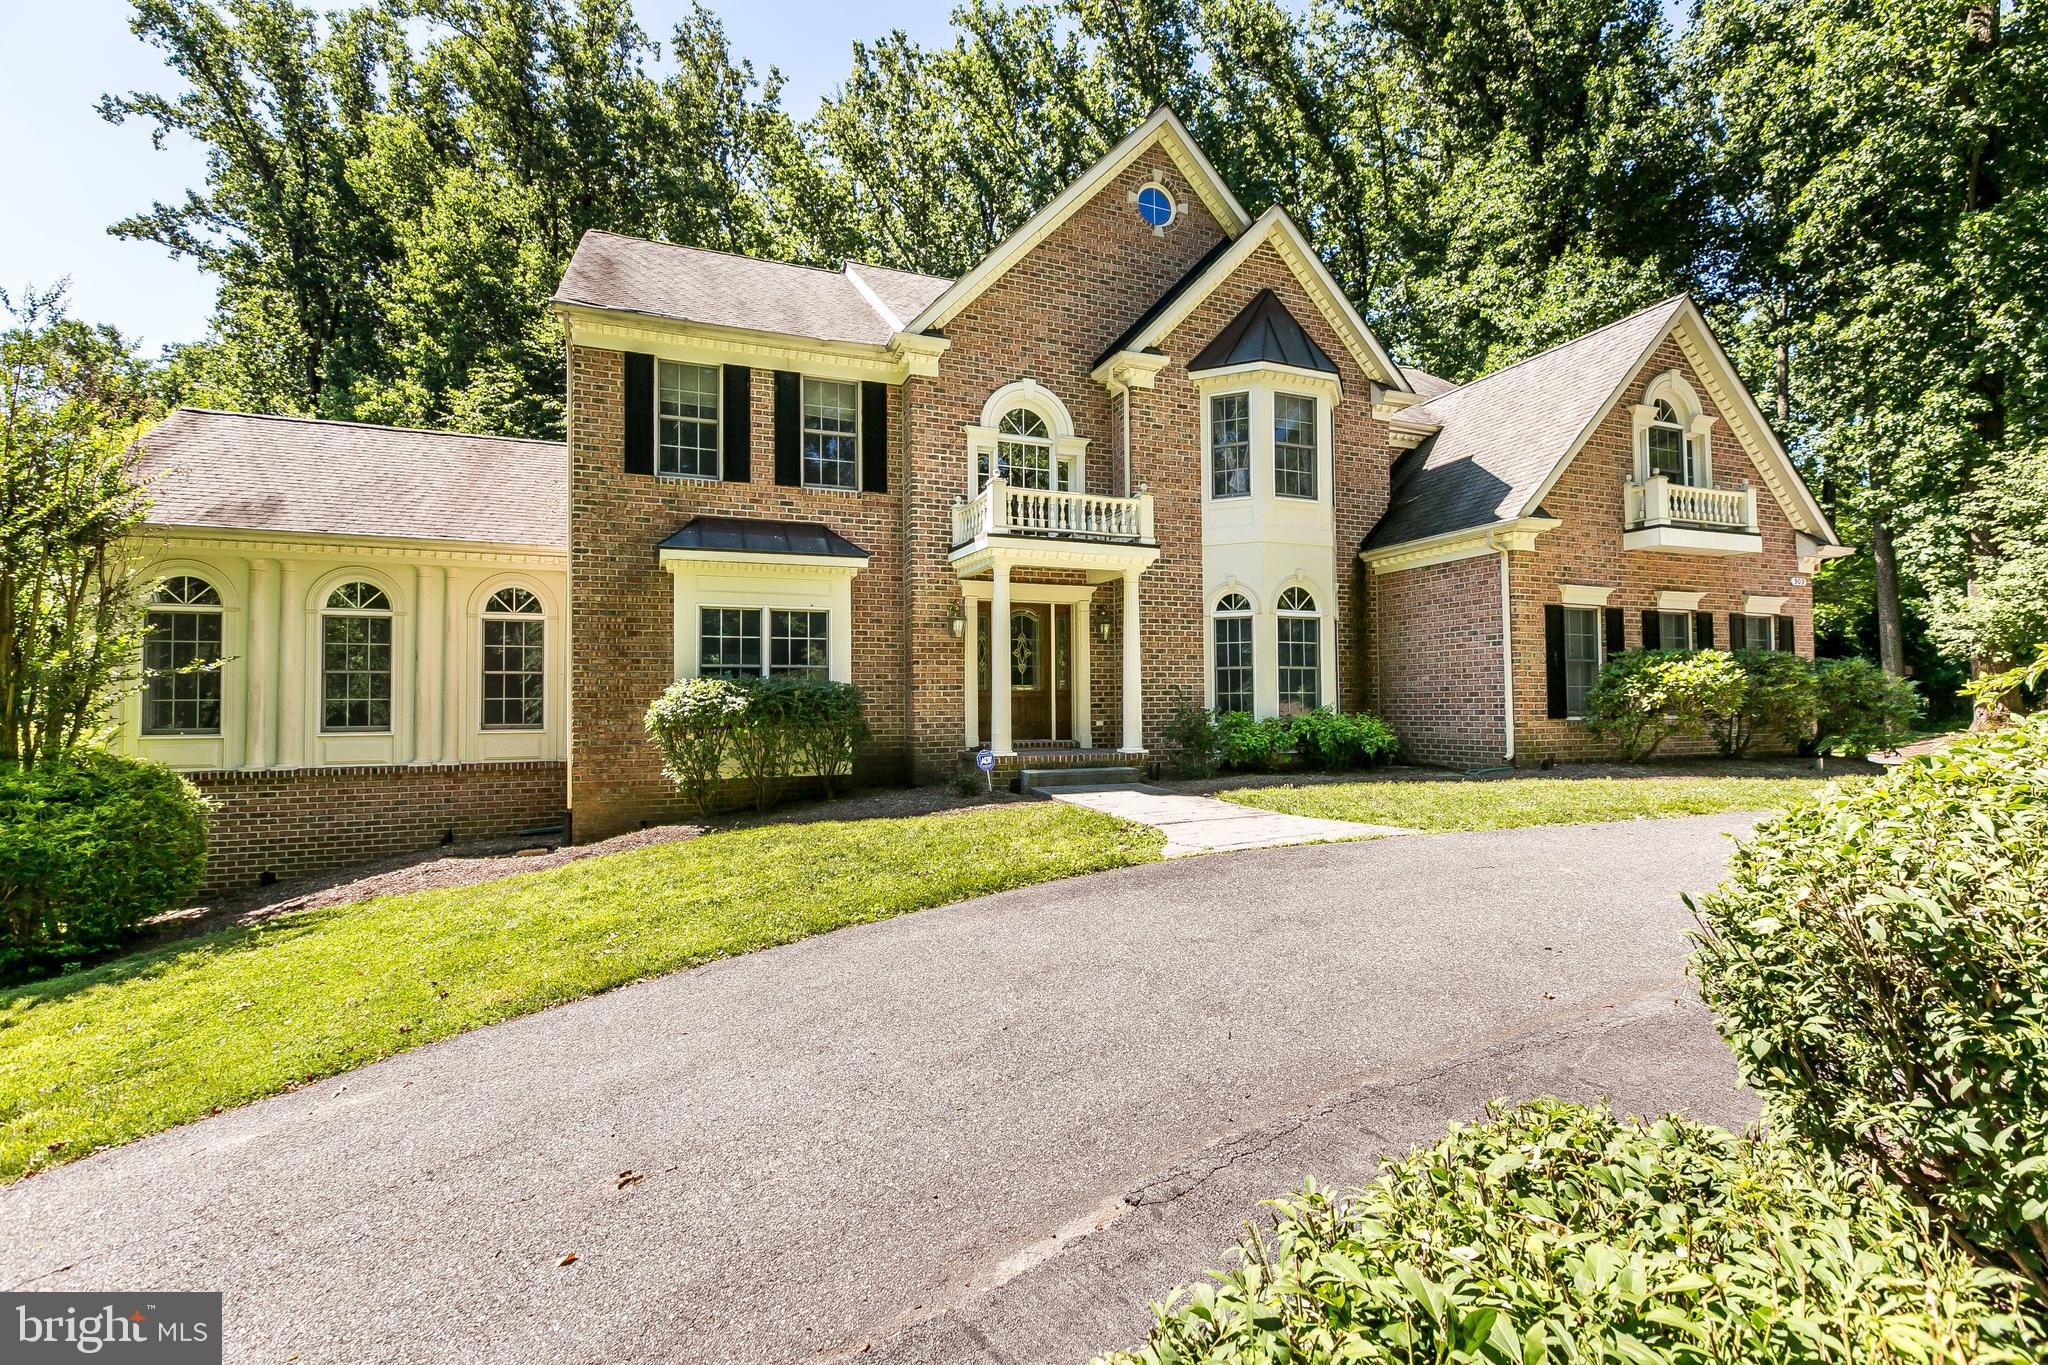 909 HILLSTEAD DRIVE, LUTHERVILLE TIMONIUM, MD 21093